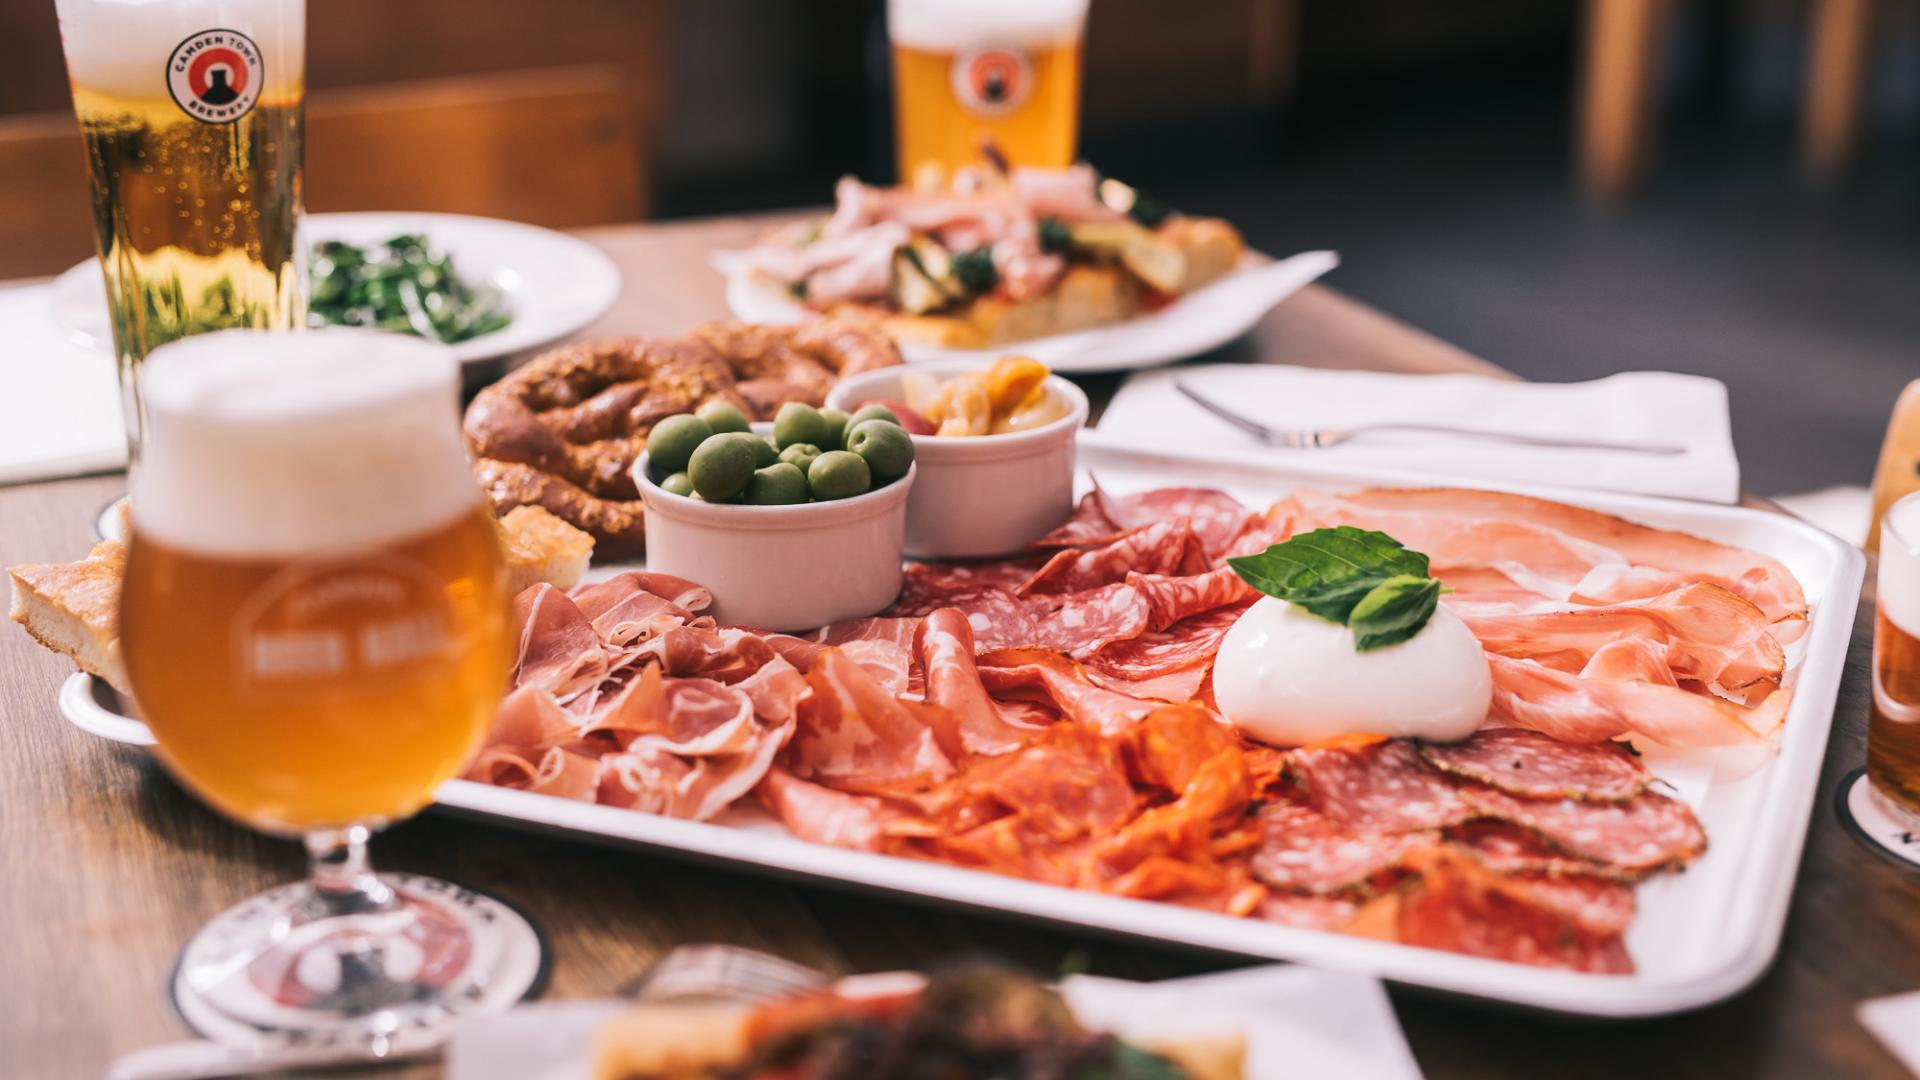 New London openings: Camden Brewery's Beer Hall platter to share